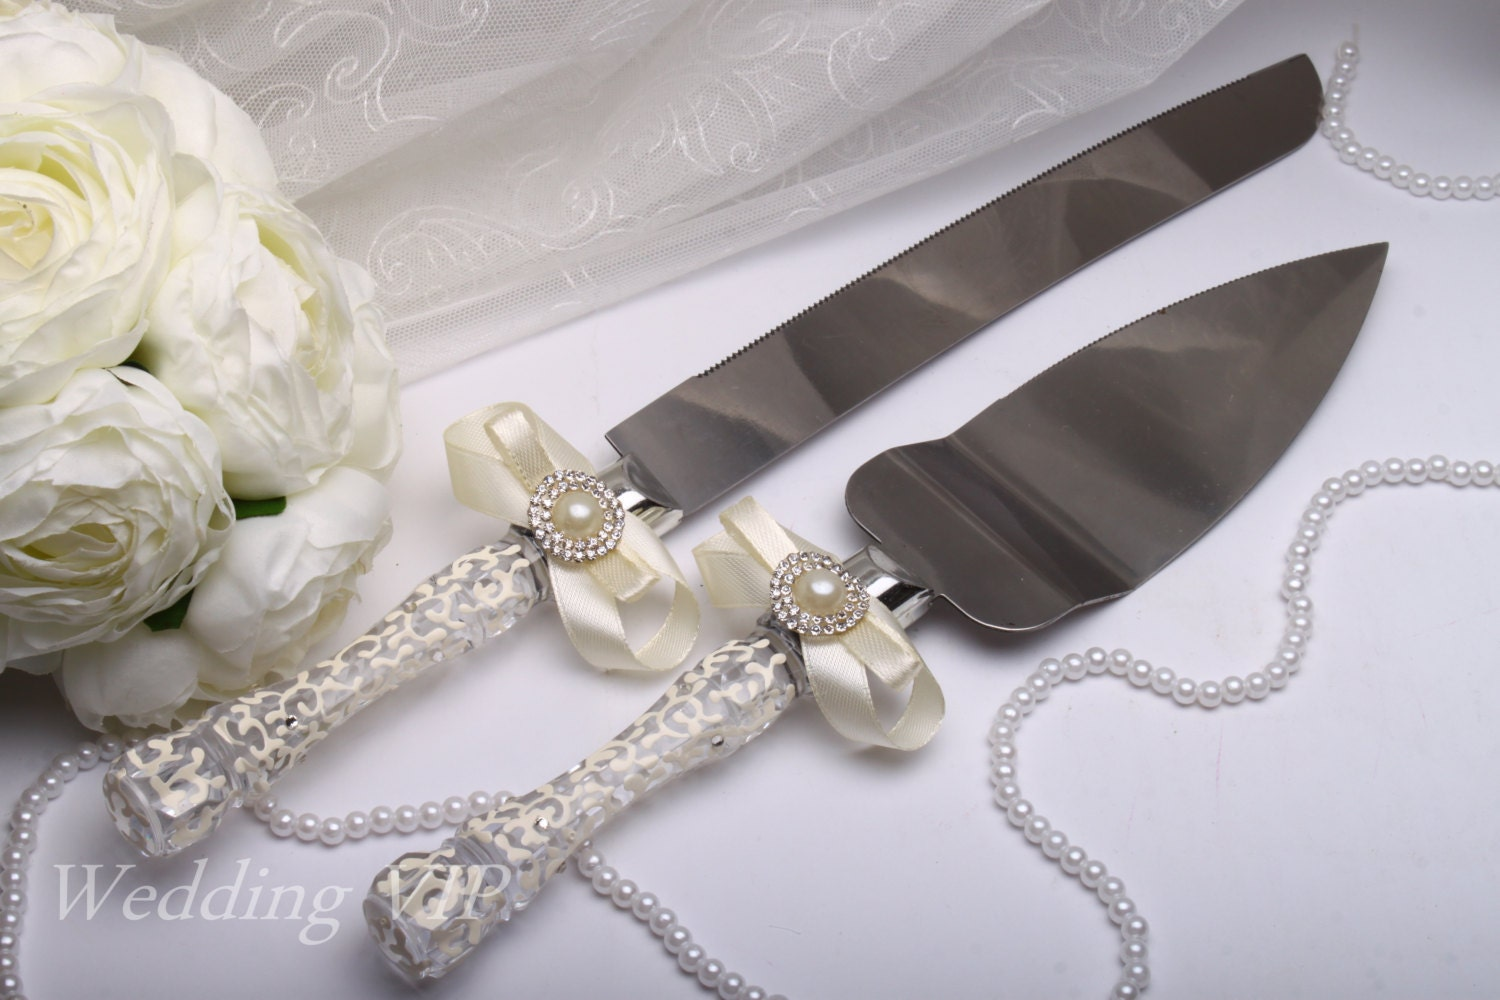 wedding cake knife set wedding cake knife wedding cake cutting set cake by vizzara 23027